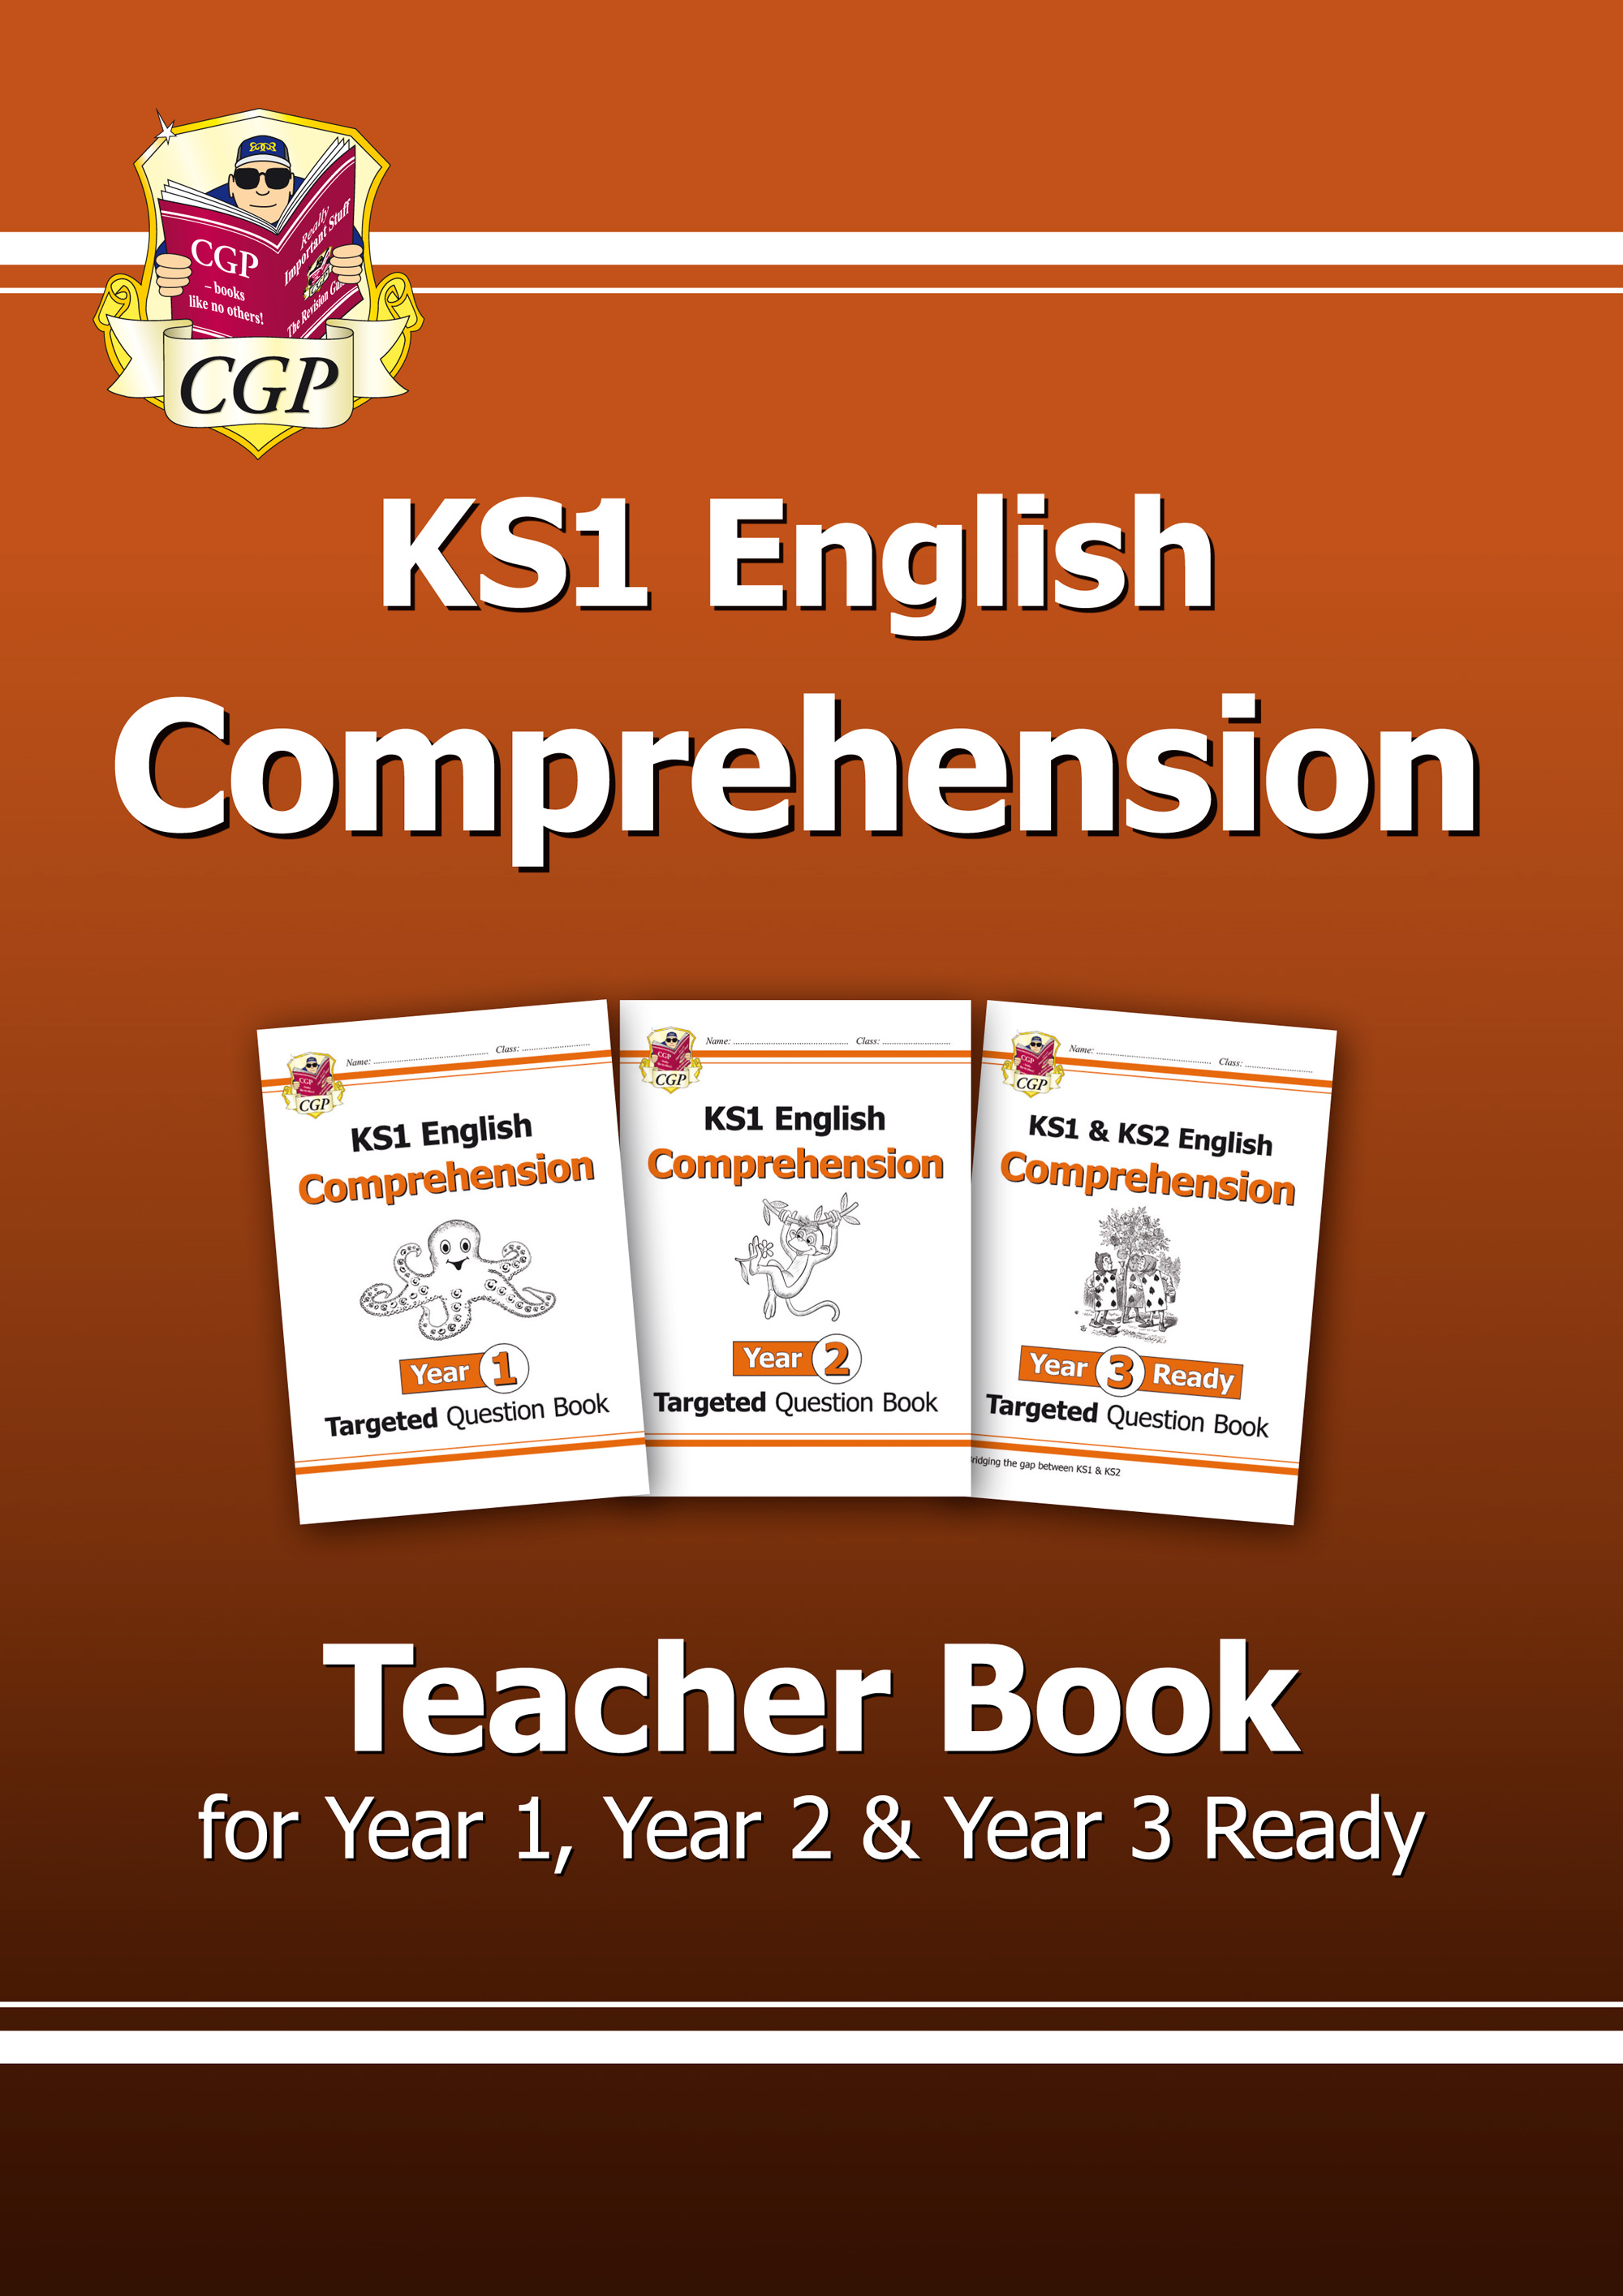 ECT11 - New KS1 English Targeted Comprehension: Teacher Book for Year 1, Year 2 & Year 3 Ready